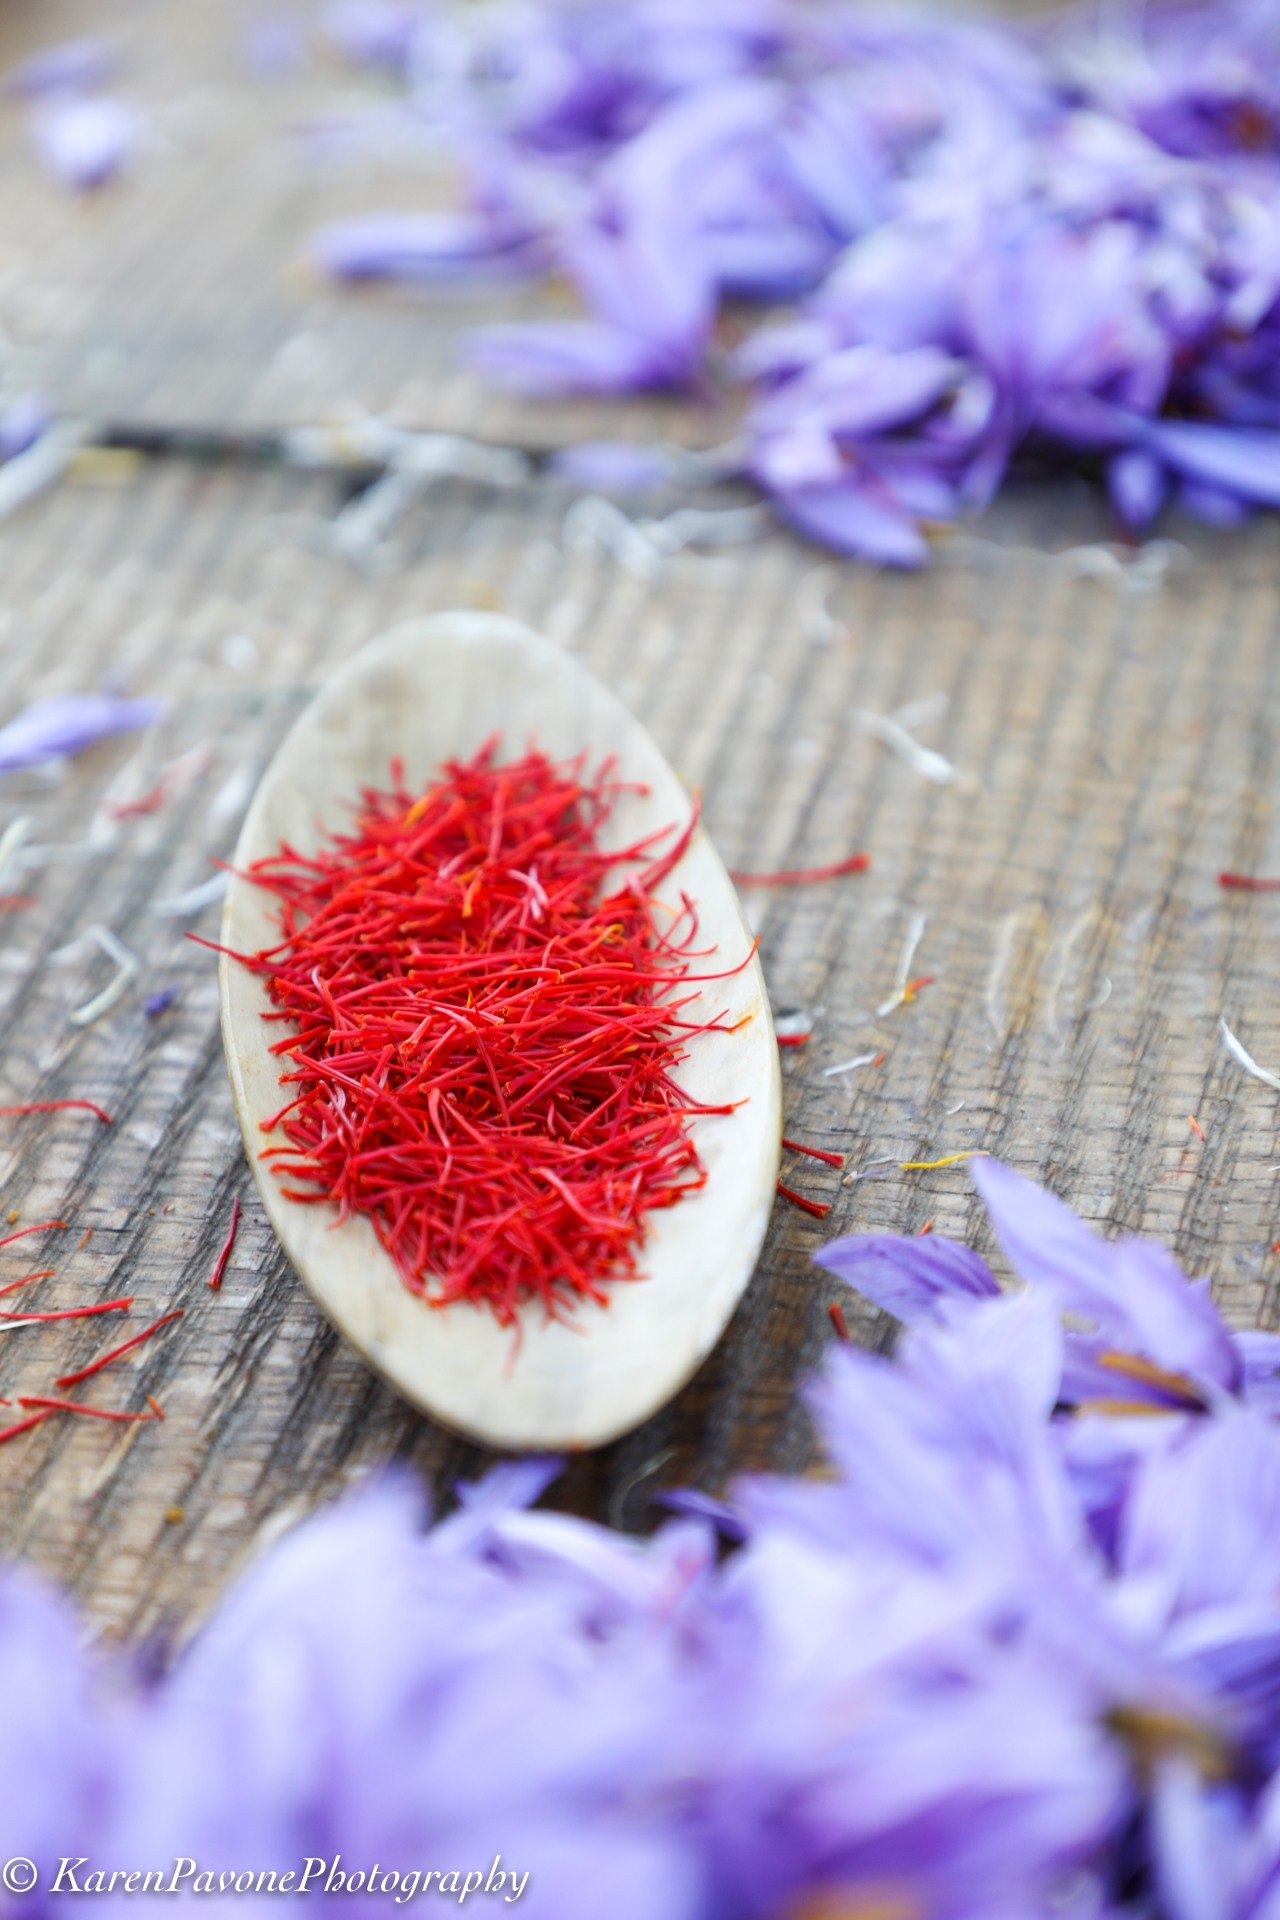 Precious Gold: Growing California Saffron at Peace & Plenty Farm